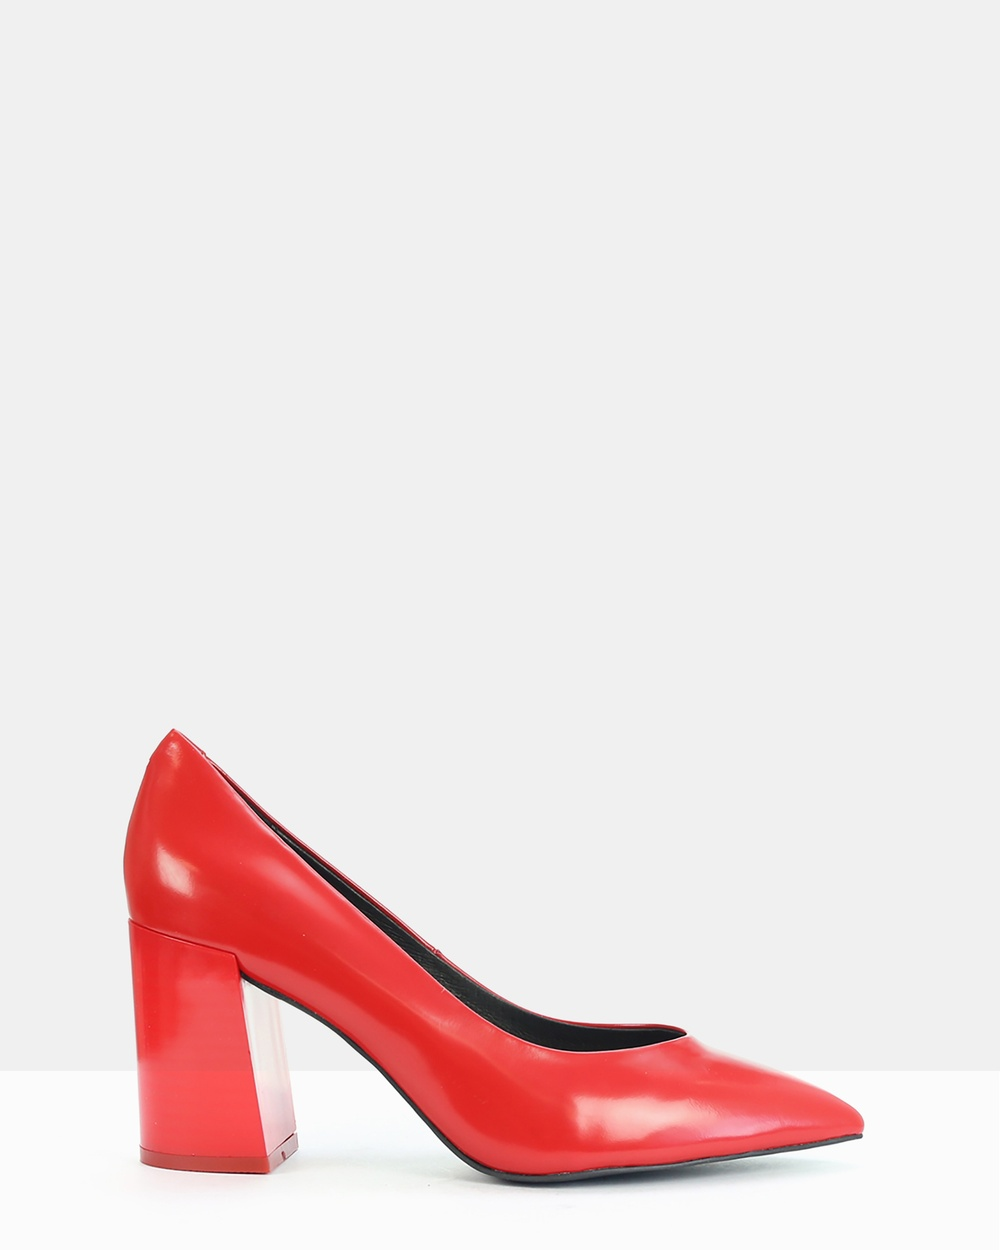 FRANK/E Curve Heels Red Curve